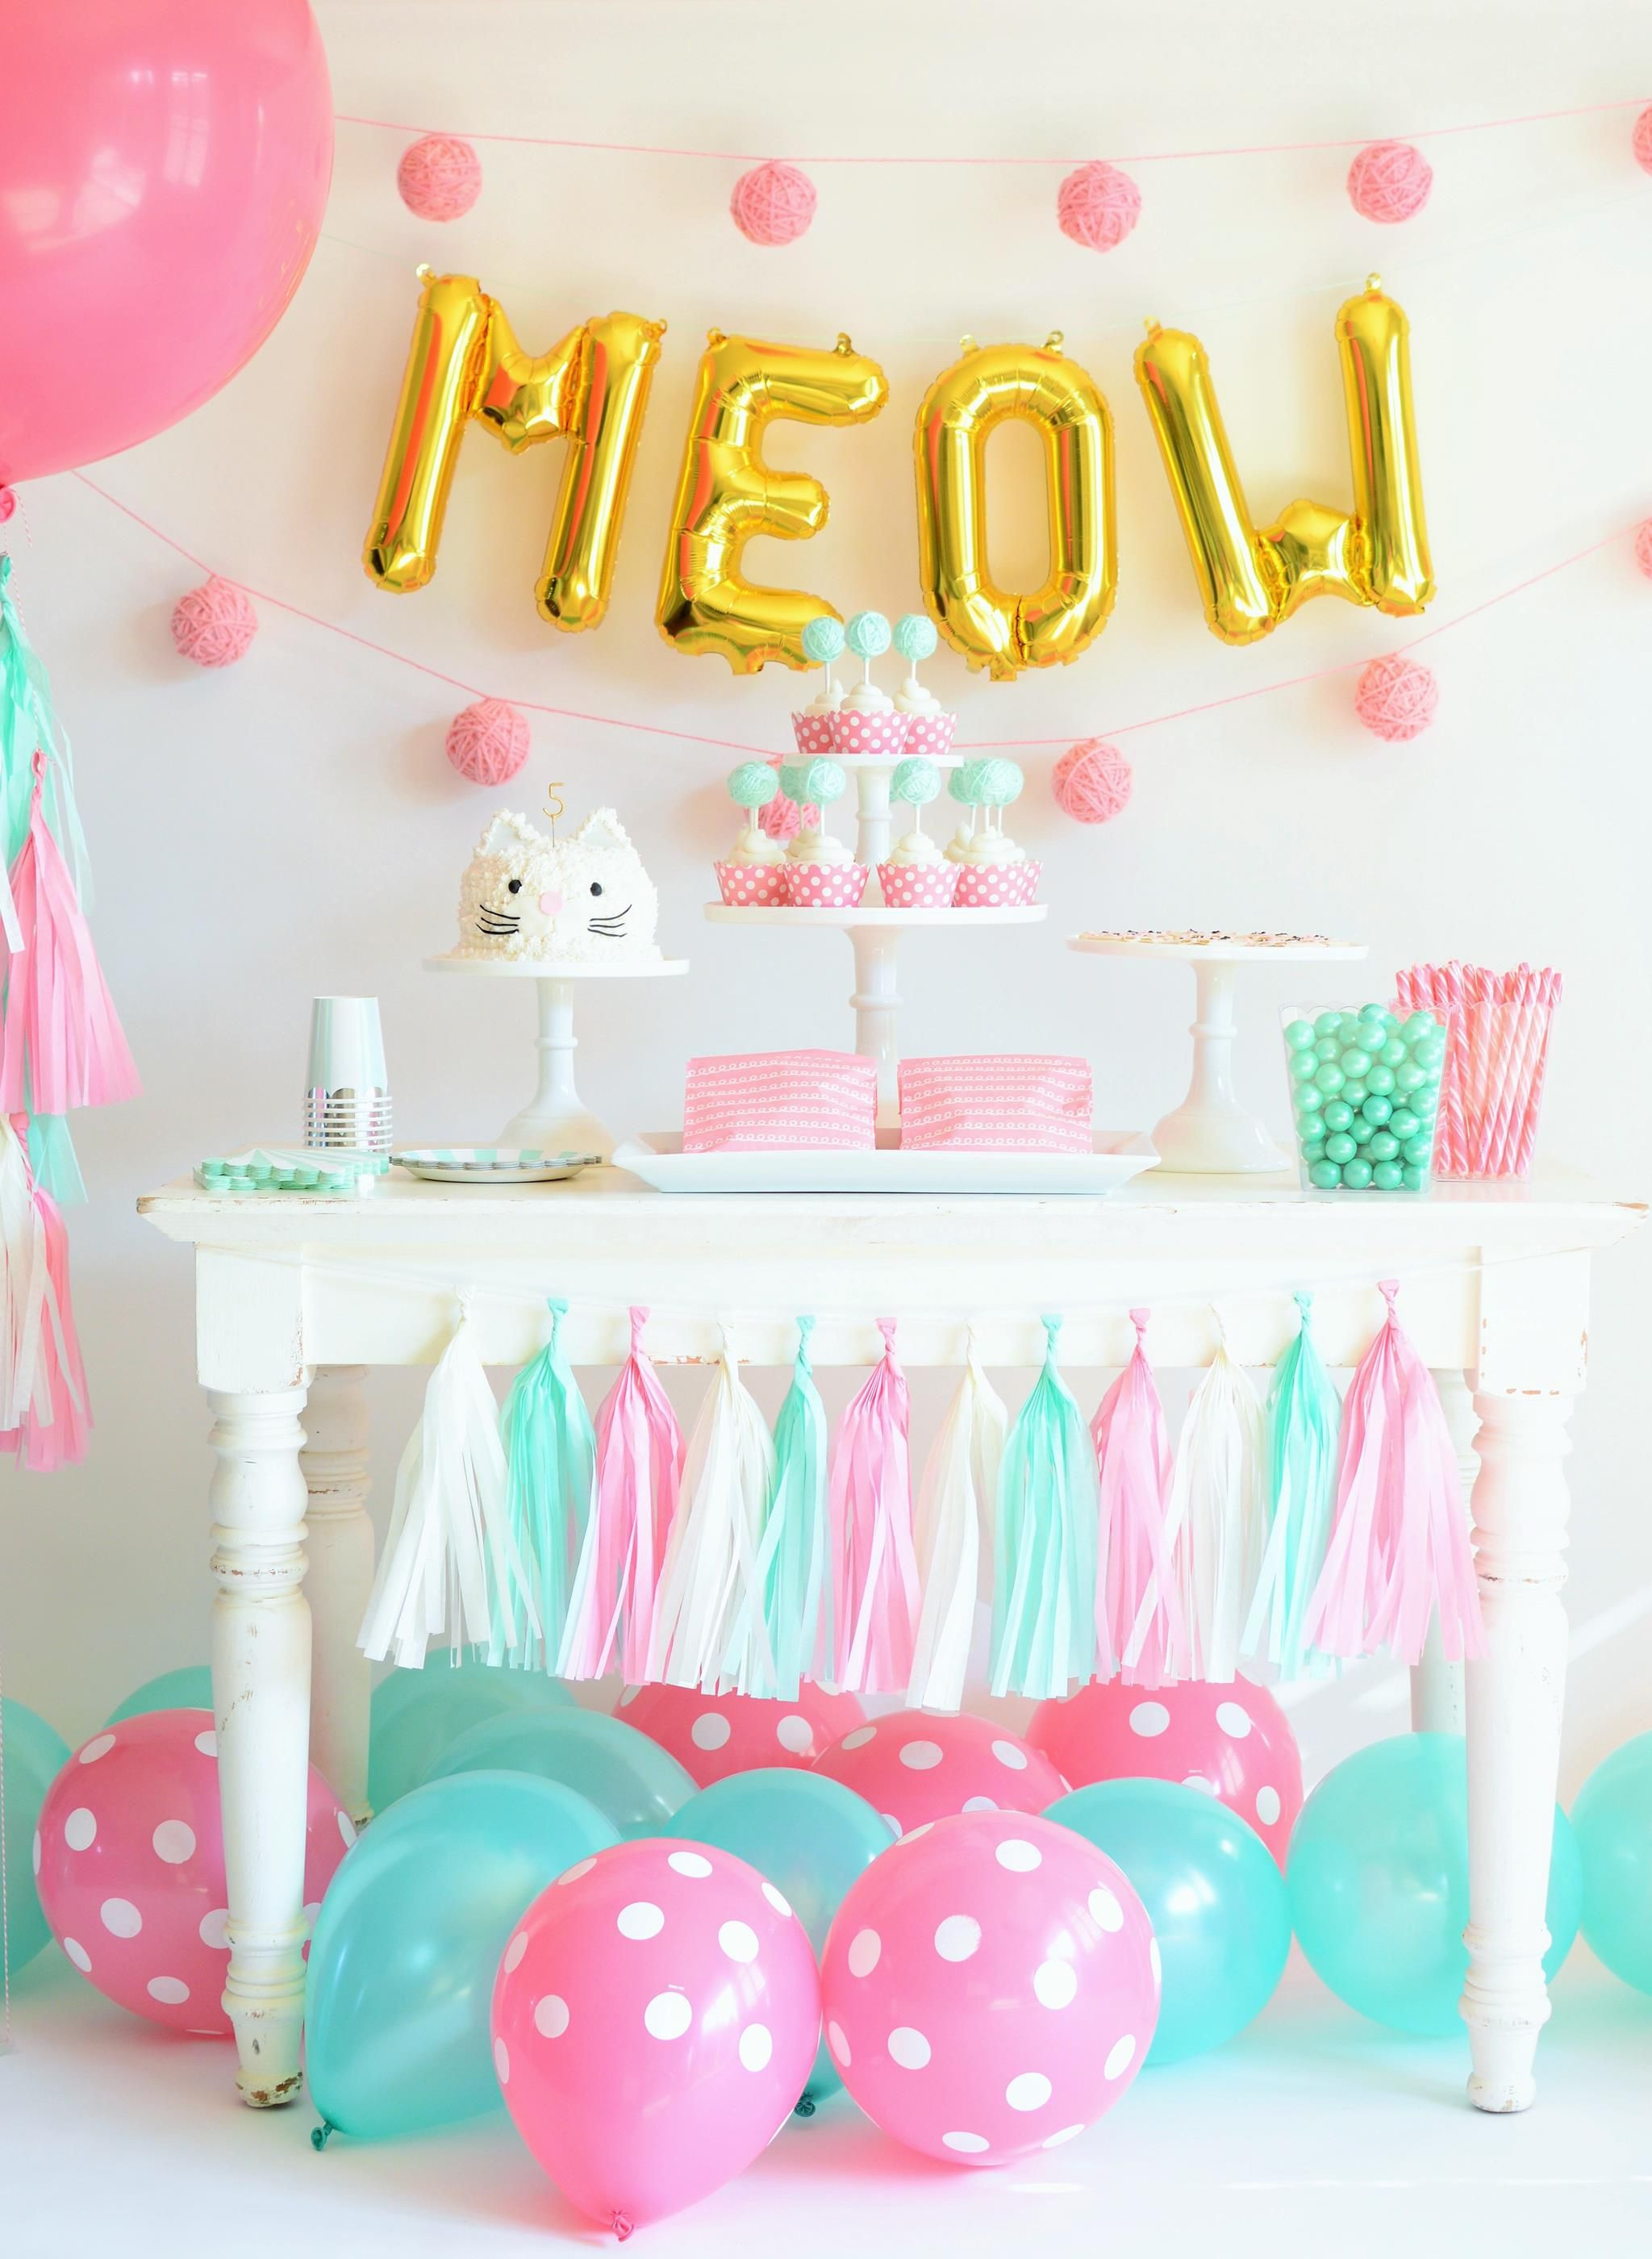 birthday party supplies themes ; how-to-throw-the-purr-fect-kitten-party-design-of-65th-birthday-party-decorations-of-65th-birthday-party-decorations